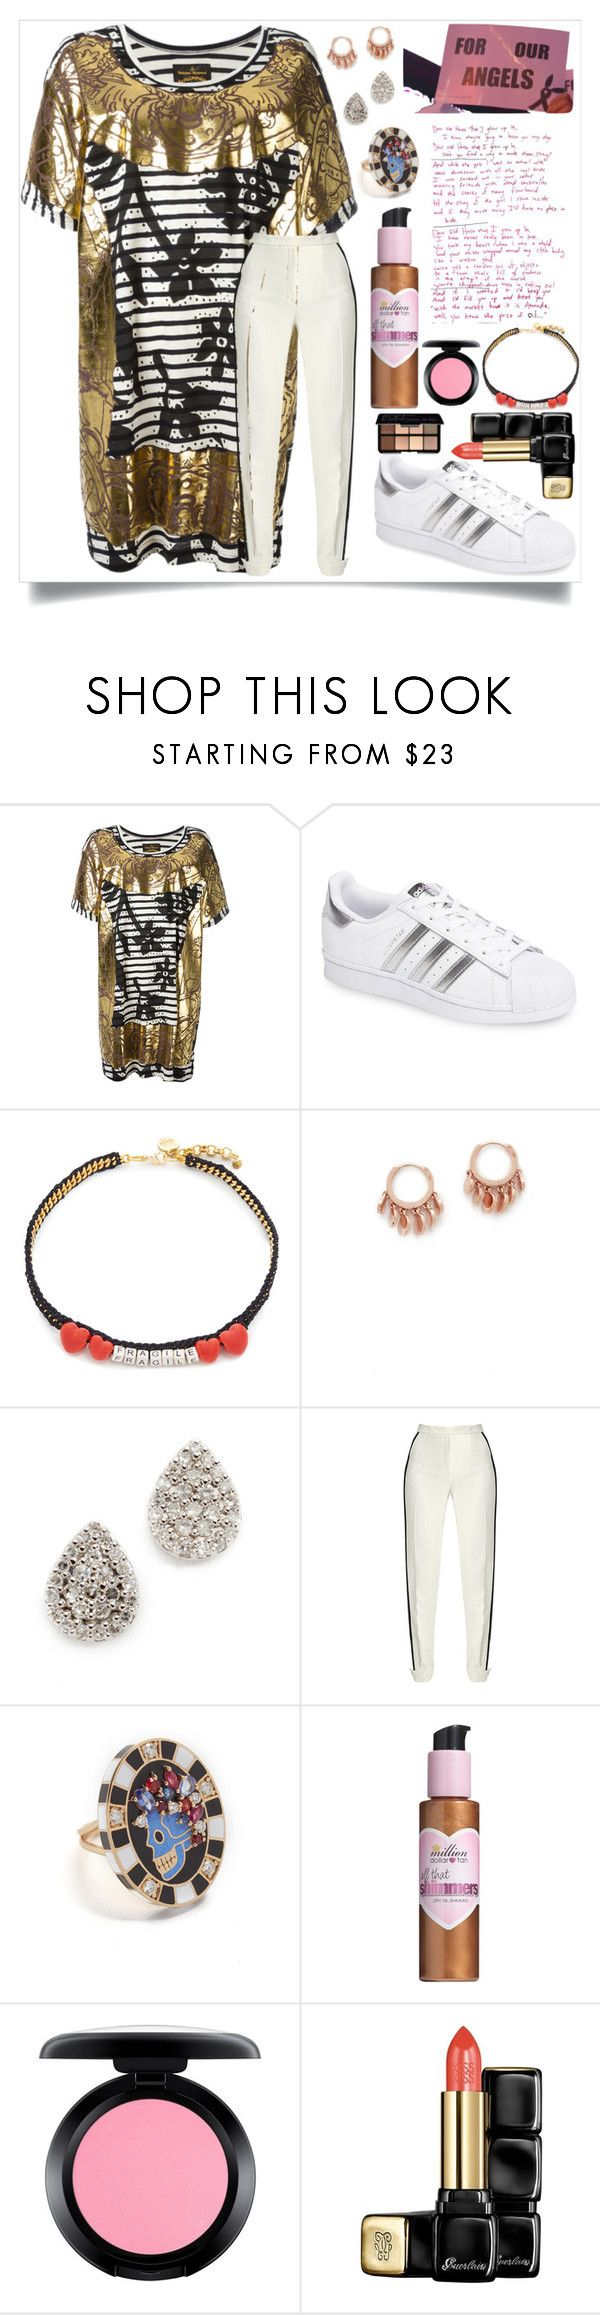 """For our Angels...."" by camry-brynn ❤ liked on Polyvore featuring Vivienne Westwood Anglomania, adidas, Venessa Arizaga, Jacquie Aiche, Adina Reyter, Elie Saab, Holly Dyment, Million Dollar Tan, MAC Cosmetics and Guerlain"